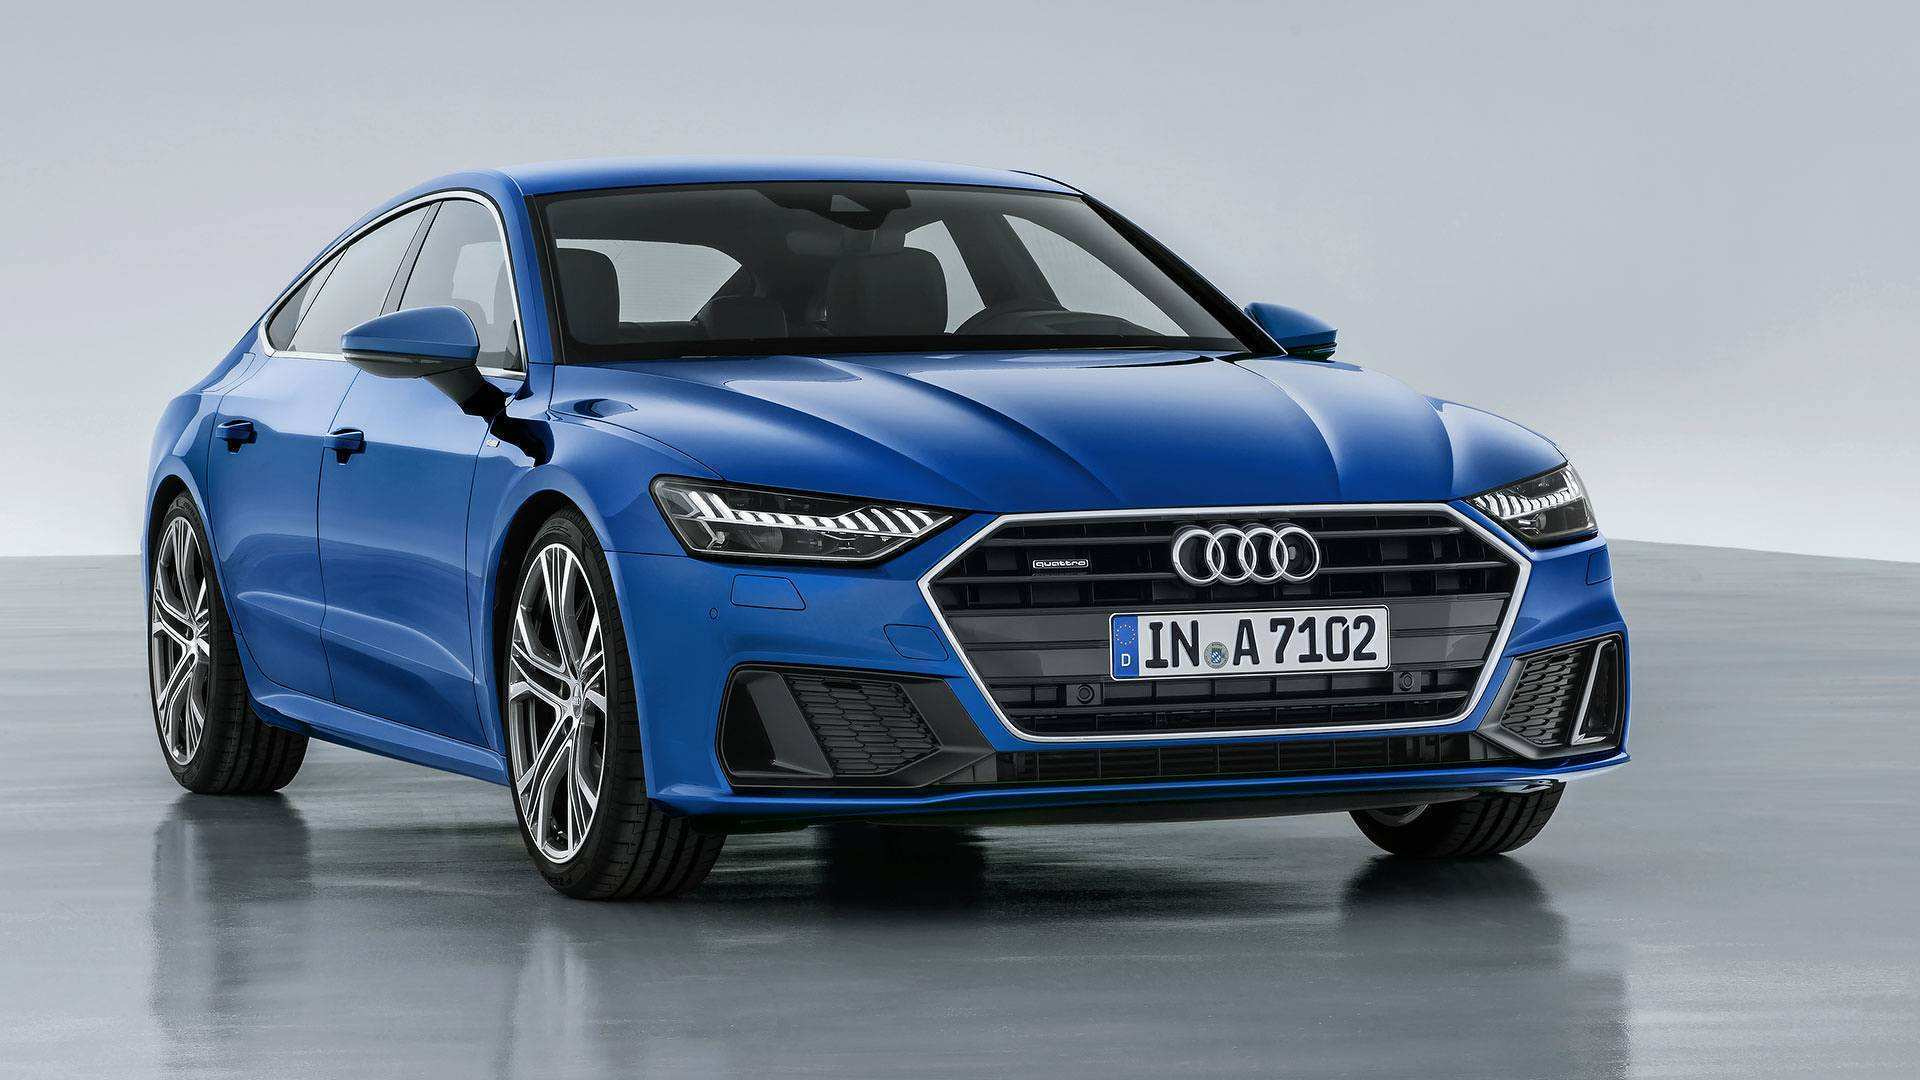 27 The 2019 Audi A7 Debut Pictures with 2019 Audi A7 Debut